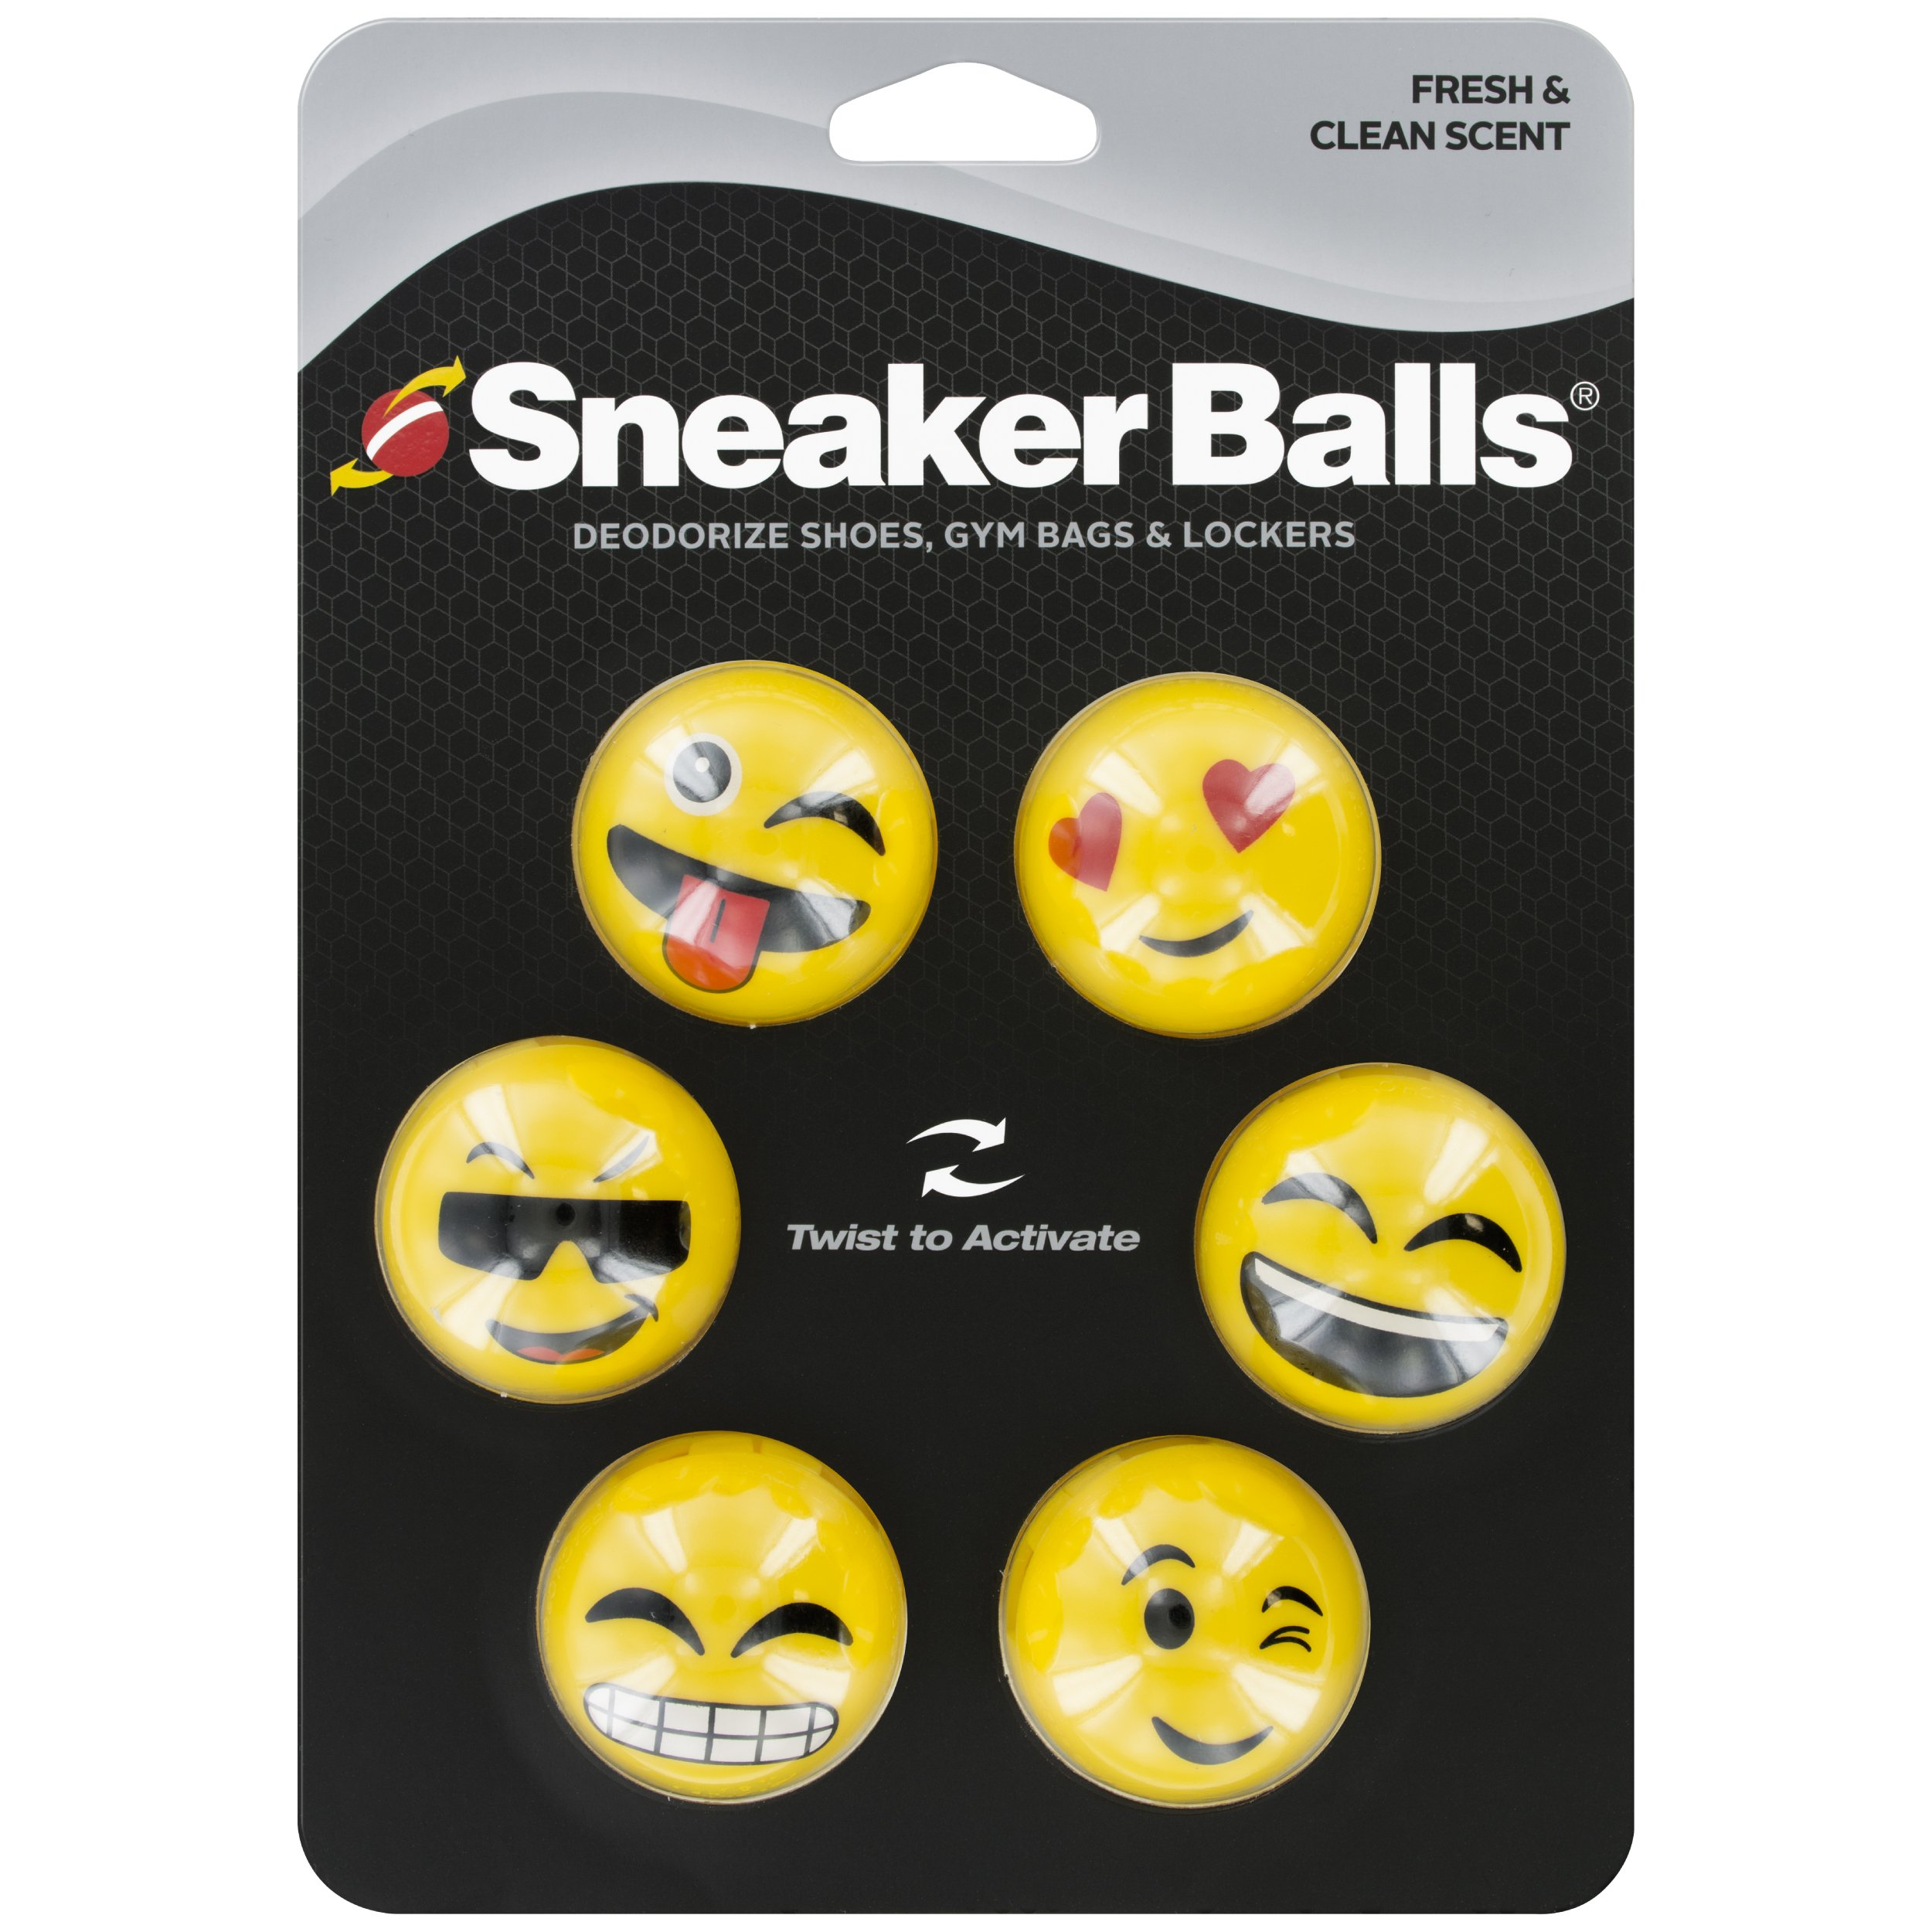 Sof Sole Sneaker Balls Shoe Gym Bag and Locker Deodorizer, Emoji, 3-Pair